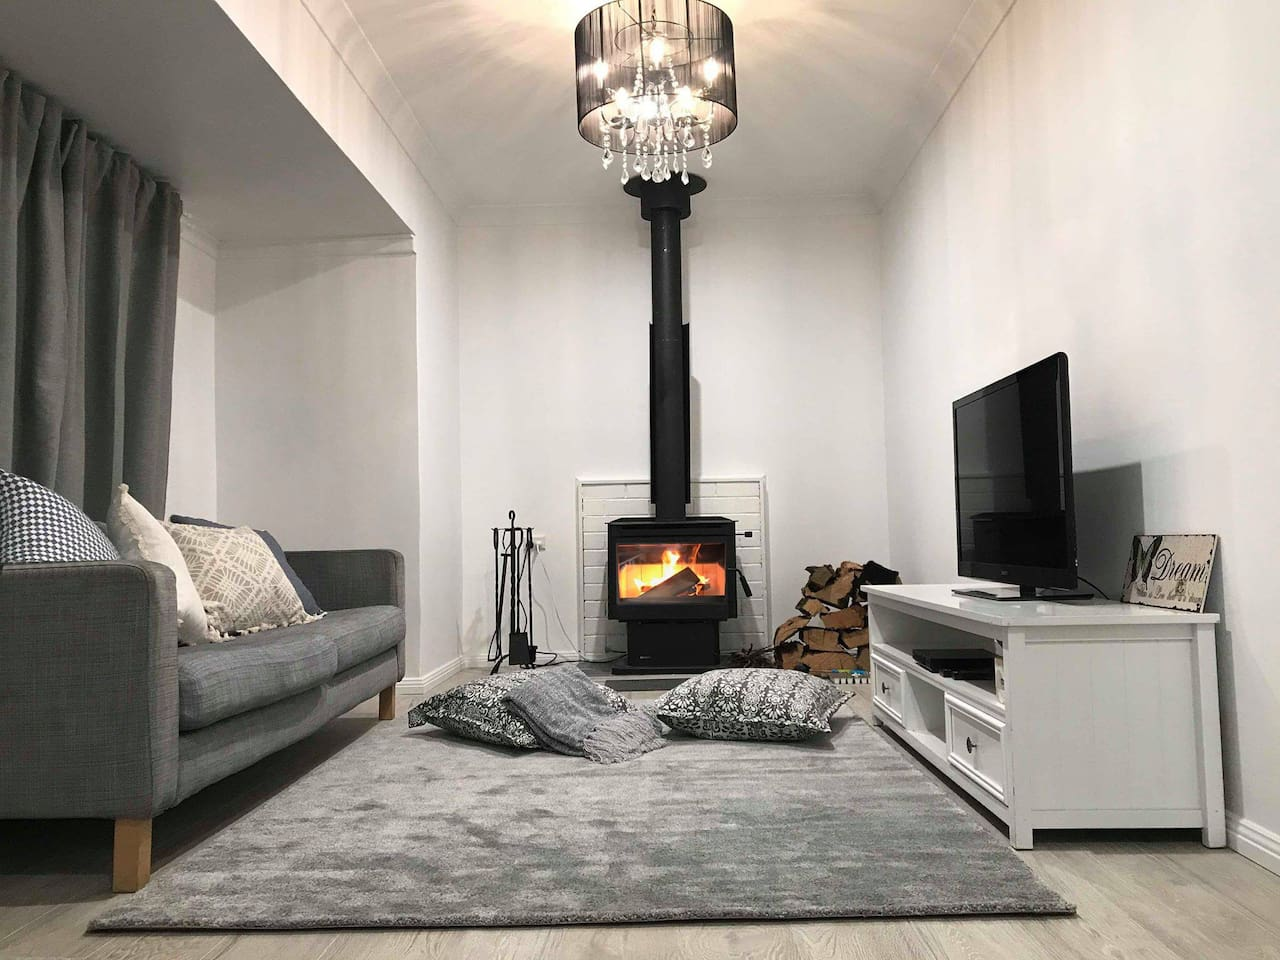 Chill out by the fireplace on our cosy cushions and rug